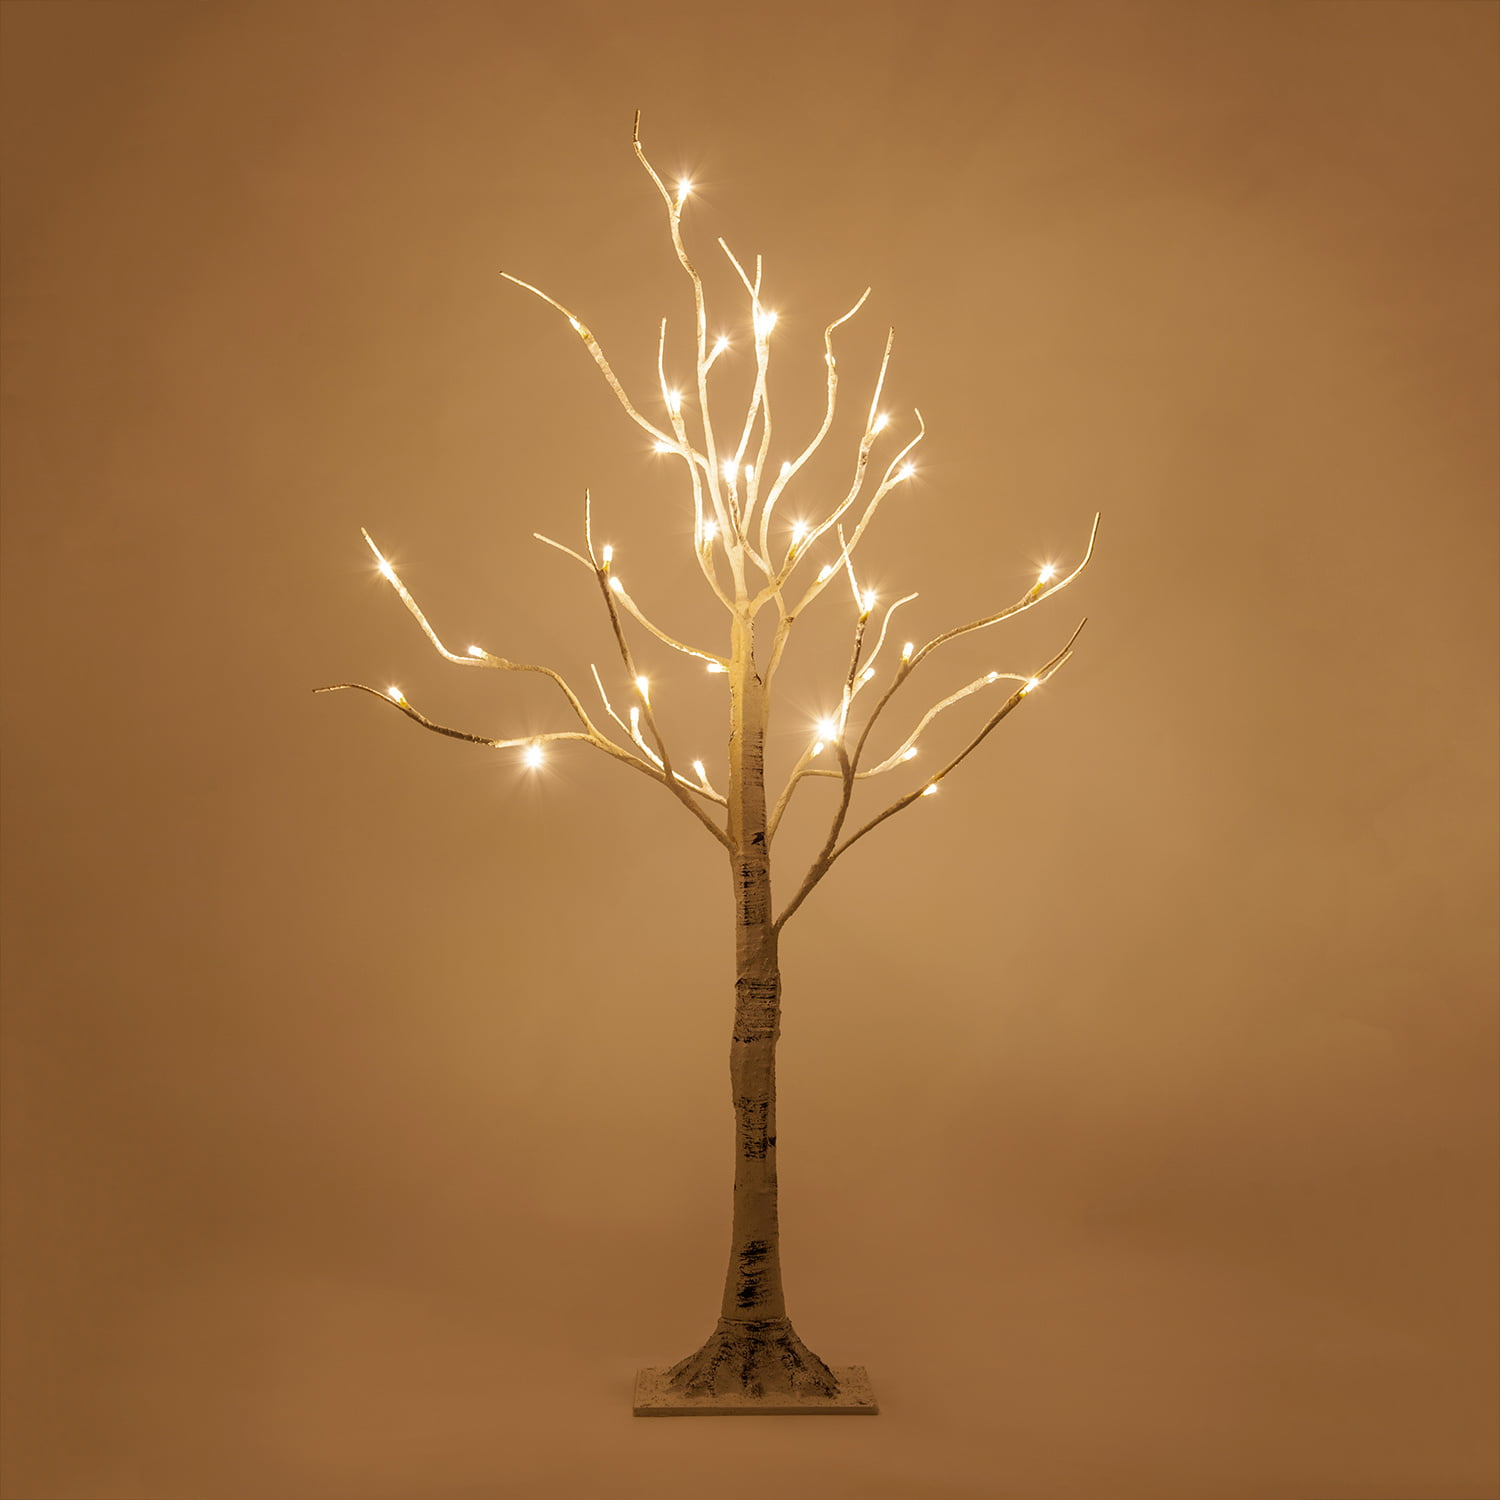 3 Ft Led White Birch Twig Tree Light 36 Warm White Led Lights Flexible Decorative Branches Indoor Covered Outdoor Low Voltage